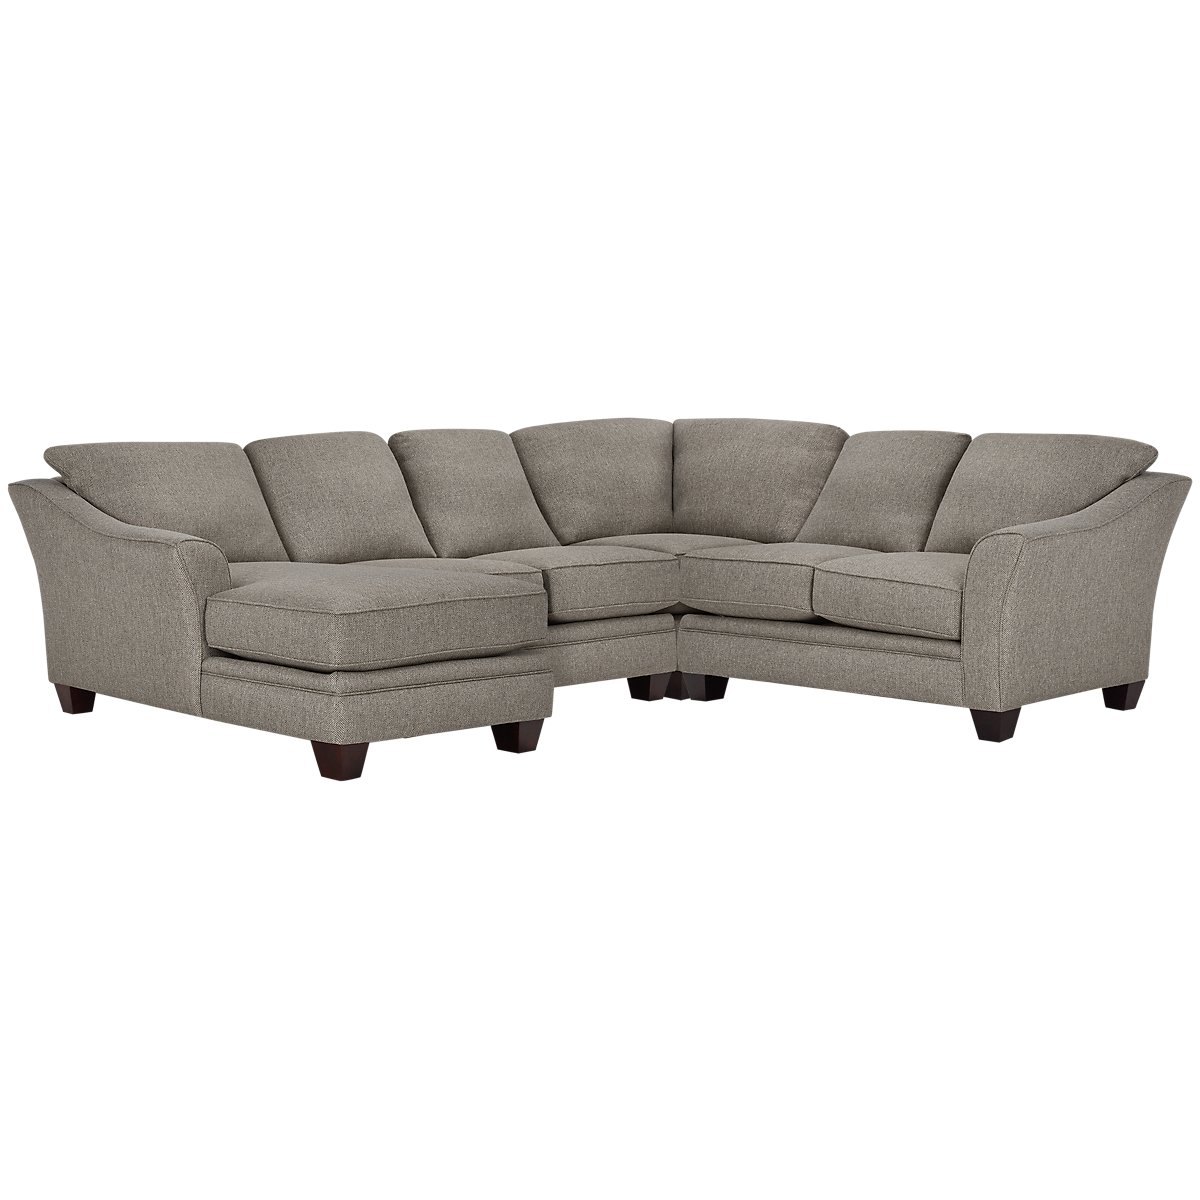 Avery Dark Gray Fabric Medium Left Chaise Sectional